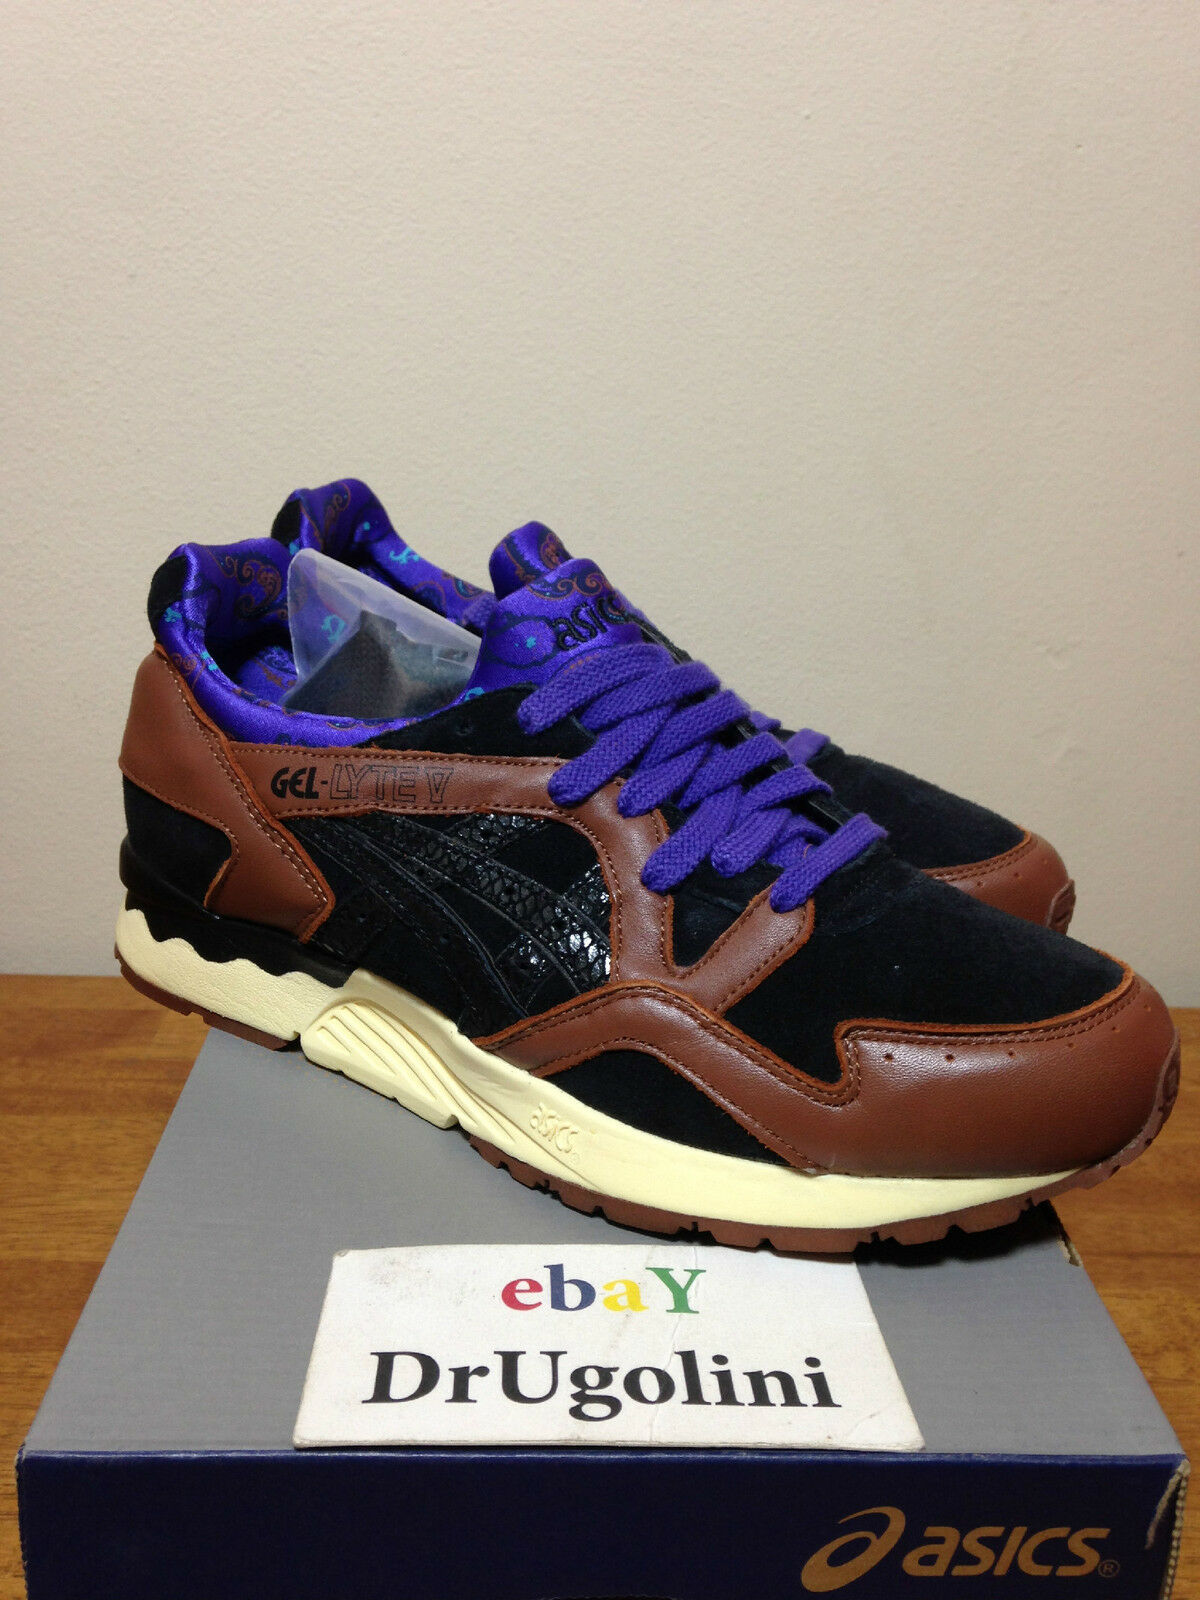 ASICS X EXTRA BUTTER GEL LYTE V 8-12 BROWN H31FK-8690.